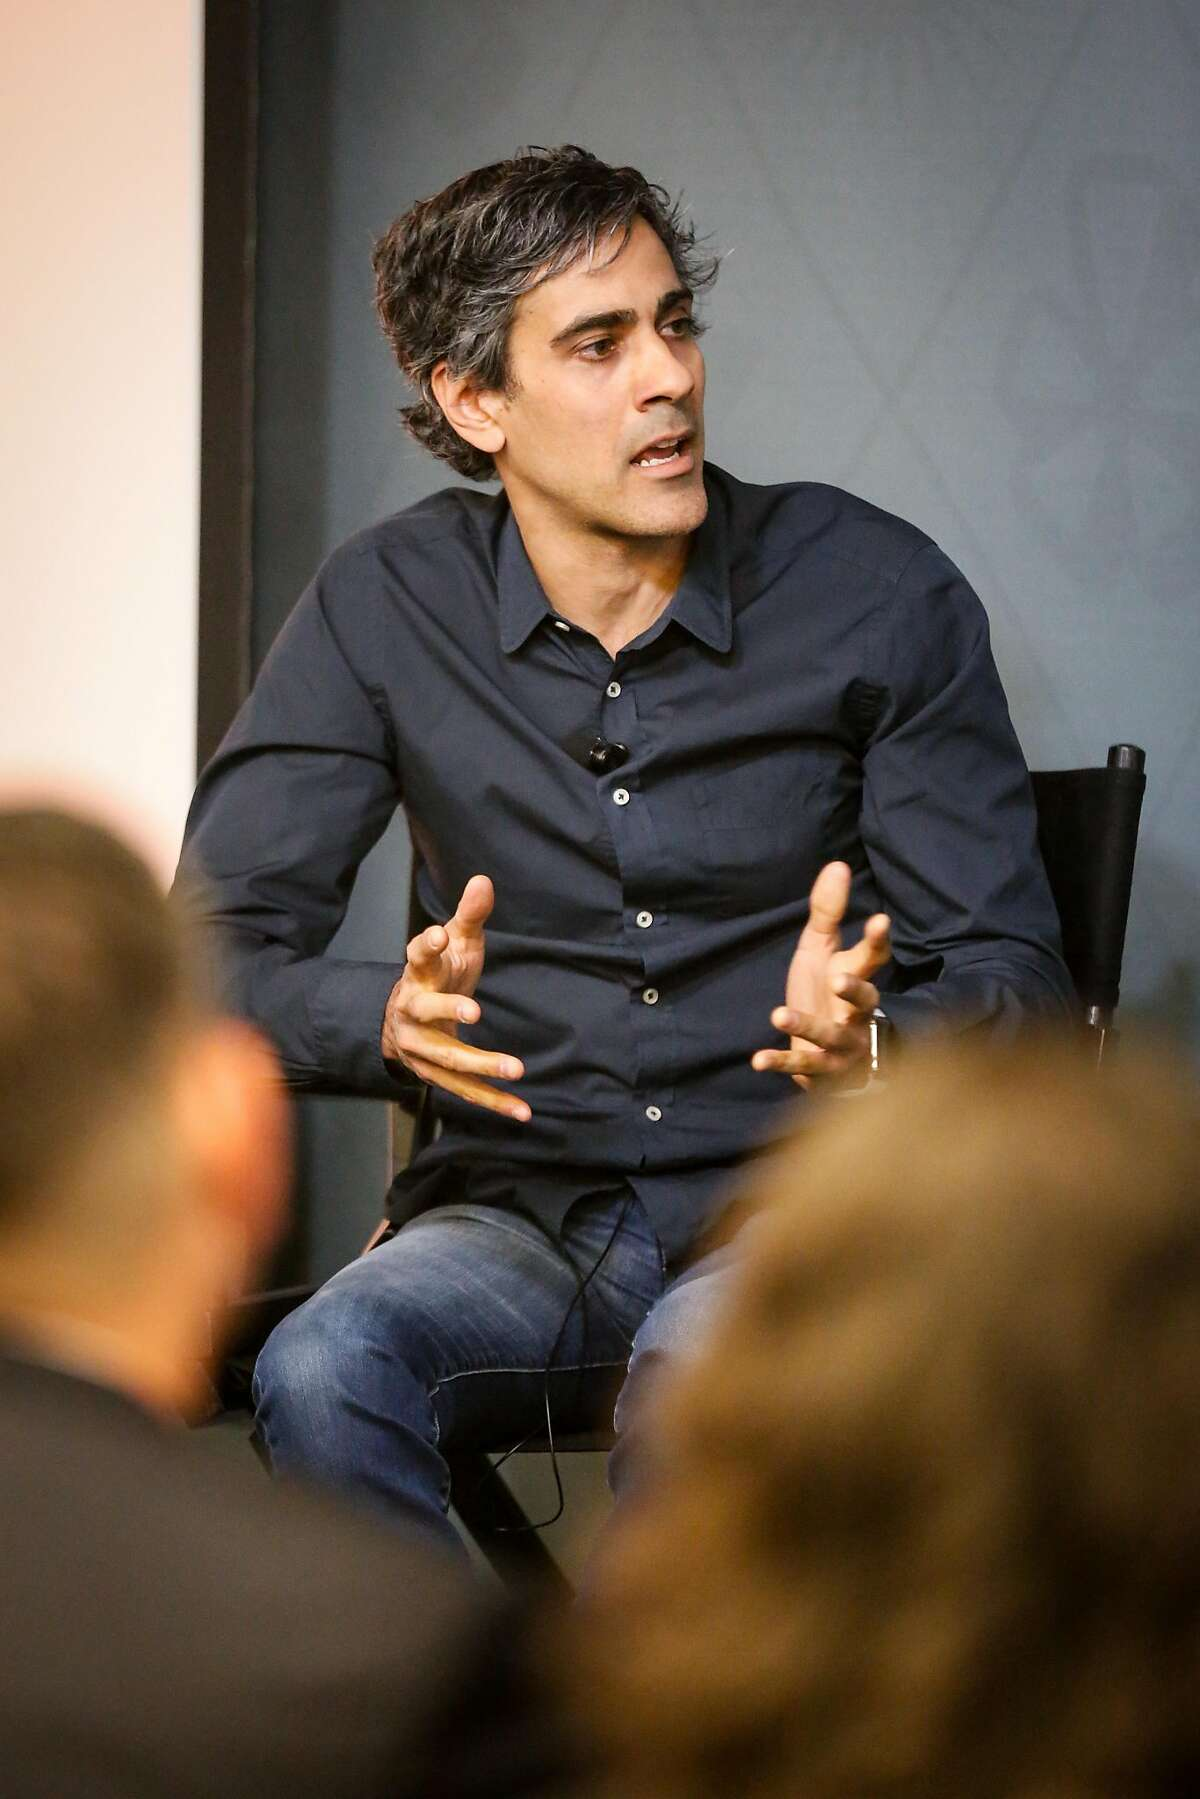 YELP CEO Jeremy Stoppelman speaks at a panel discussion on housing with State Senator Scott Wiener among others at the Yelp headquarters on Thursday, April 18, 2018 in San Francisco, California.